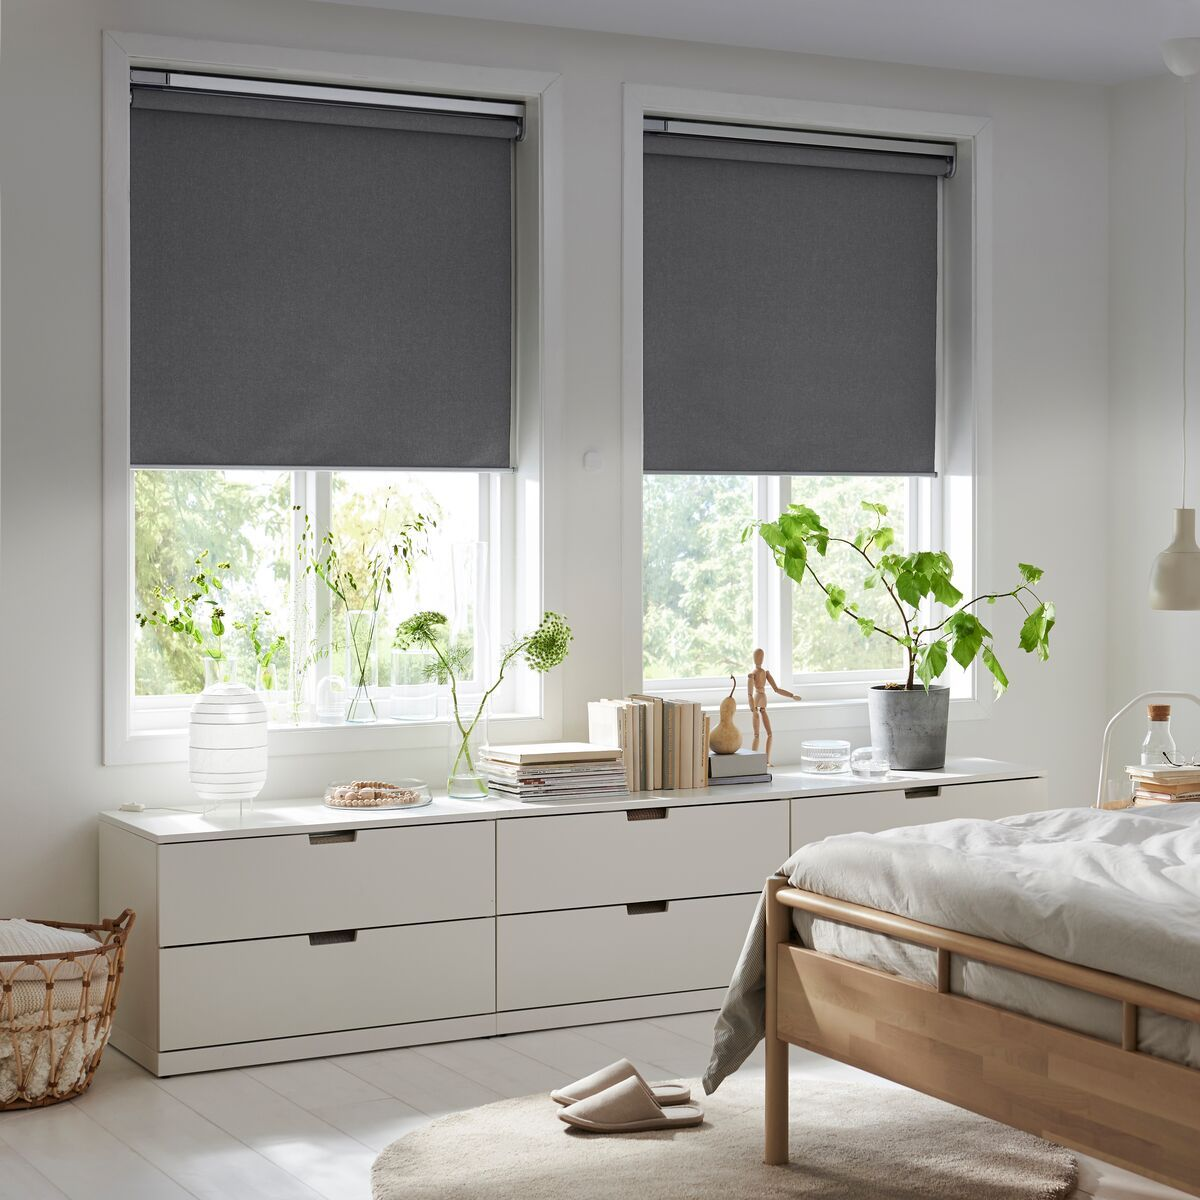 Bring Nordic Chic Into Your Bedroom In 2020 Blackout Roller Blinds Smart Blinds Ikea Home